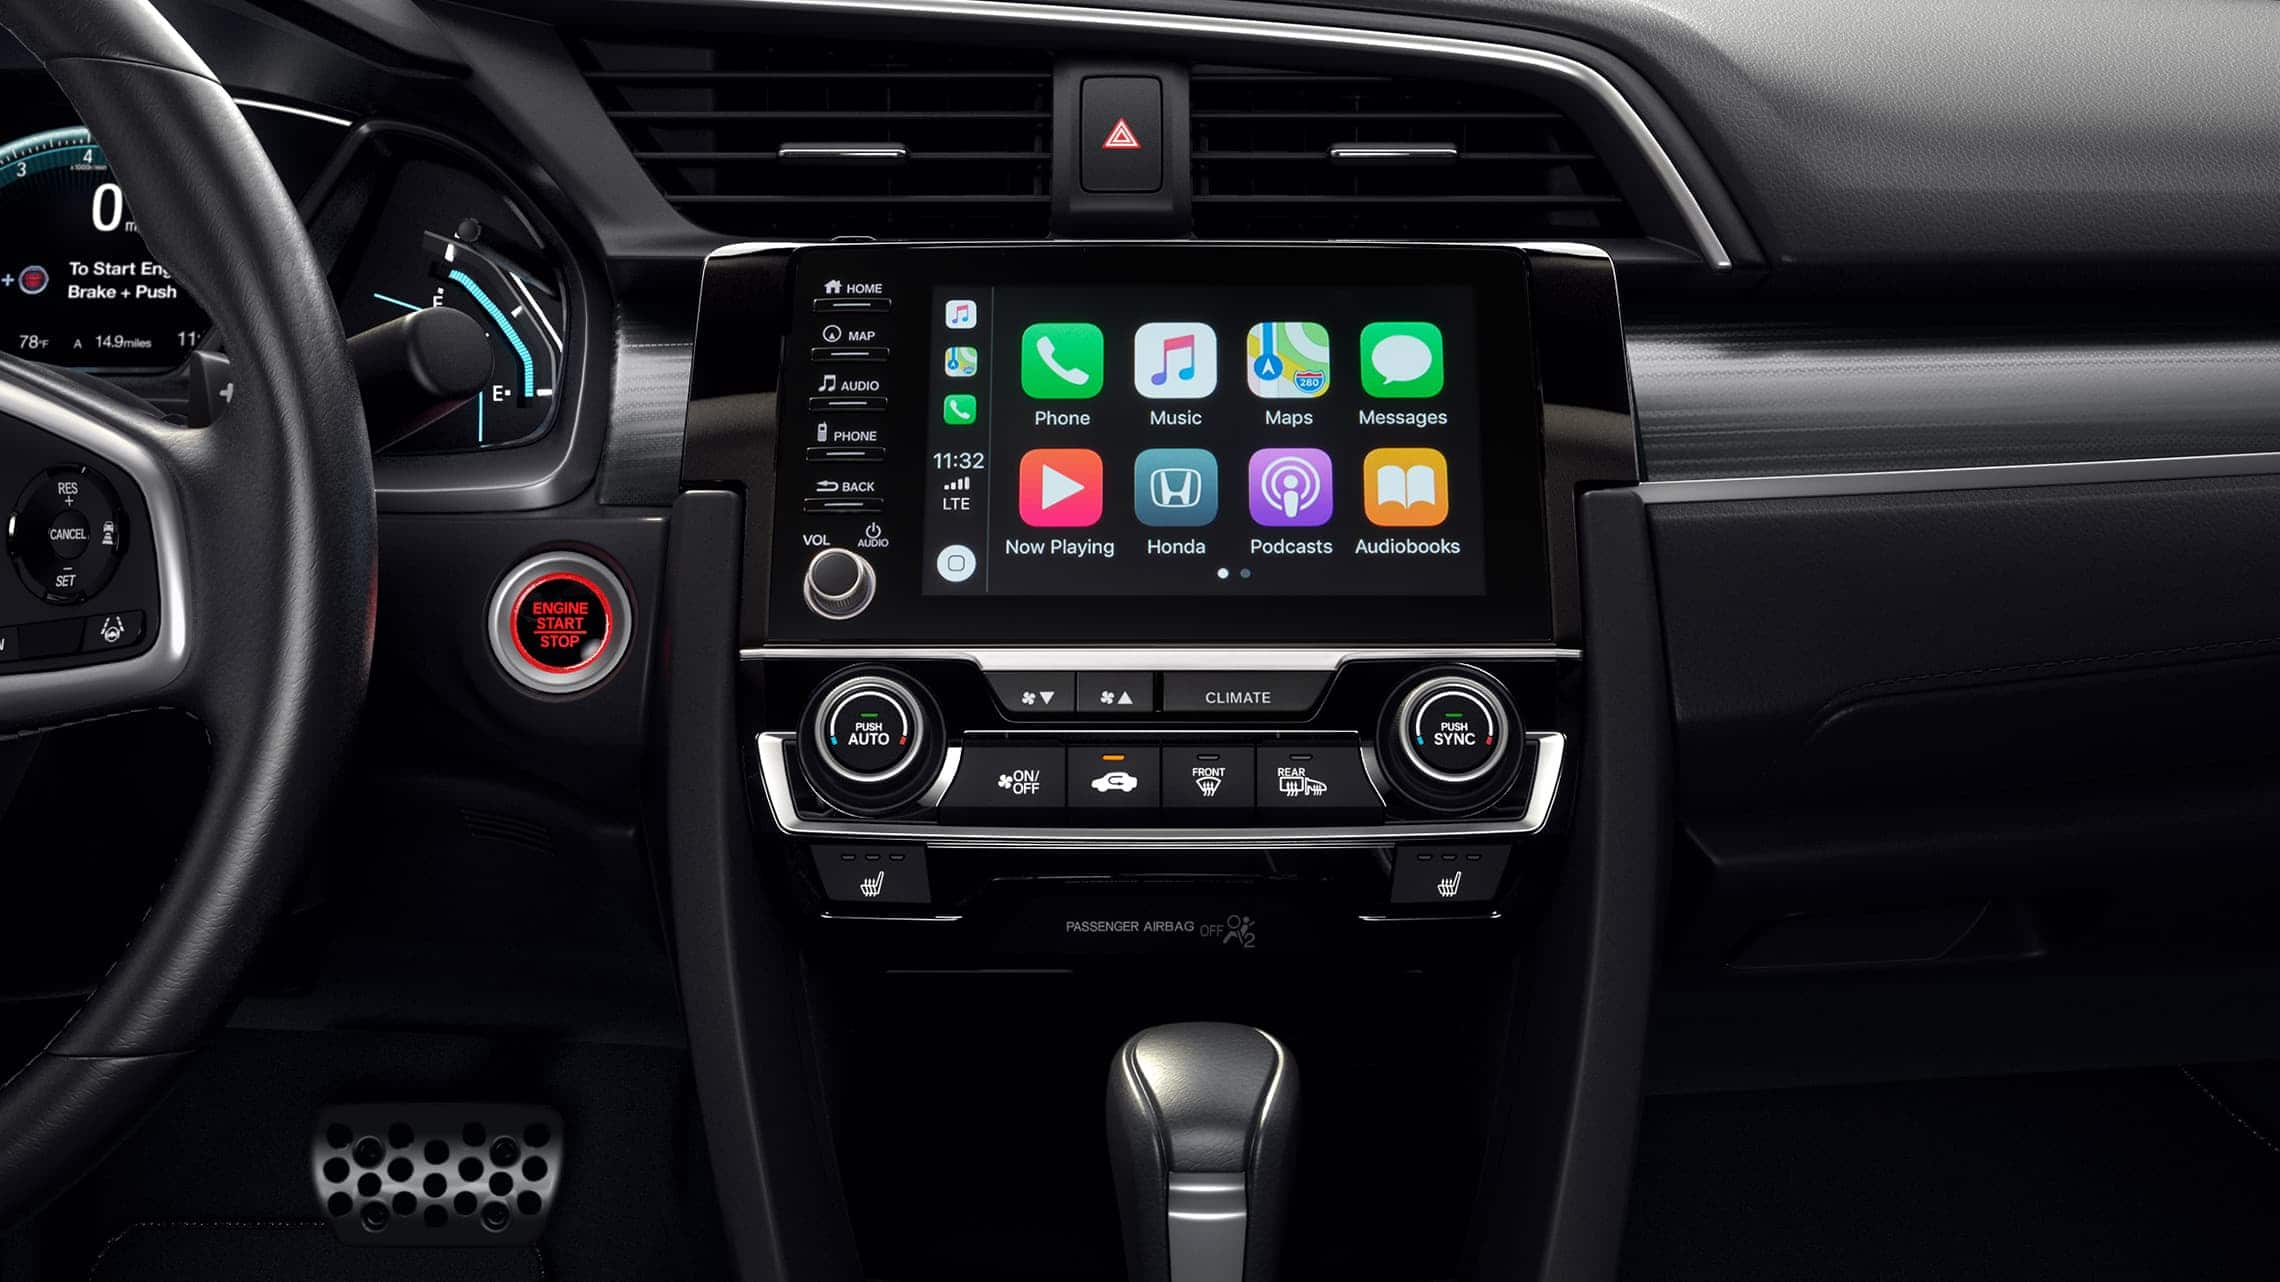 Apple CarPlay® detail on Display Audio touch-screen in the 2020 Honda Civic Touring Sedan.